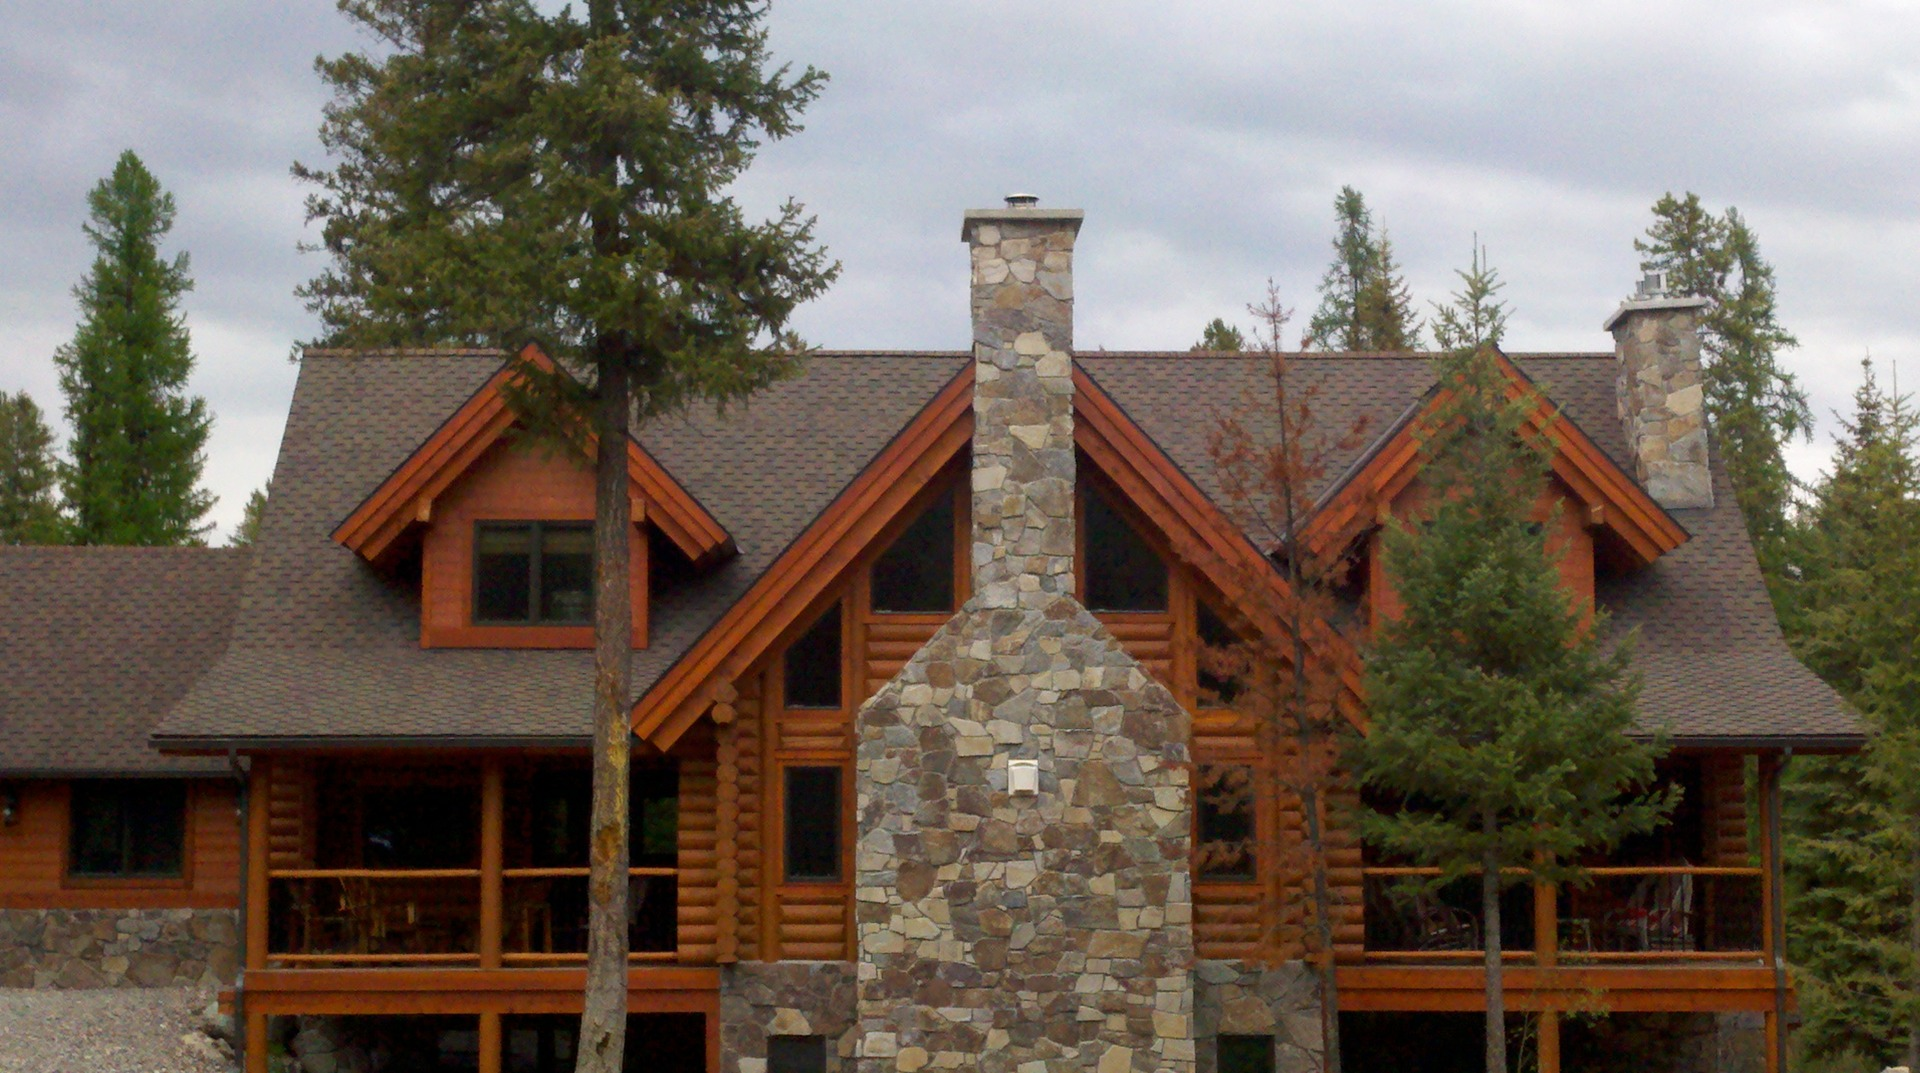 Hartz Roofing Inc In Kalispell Mt 59901